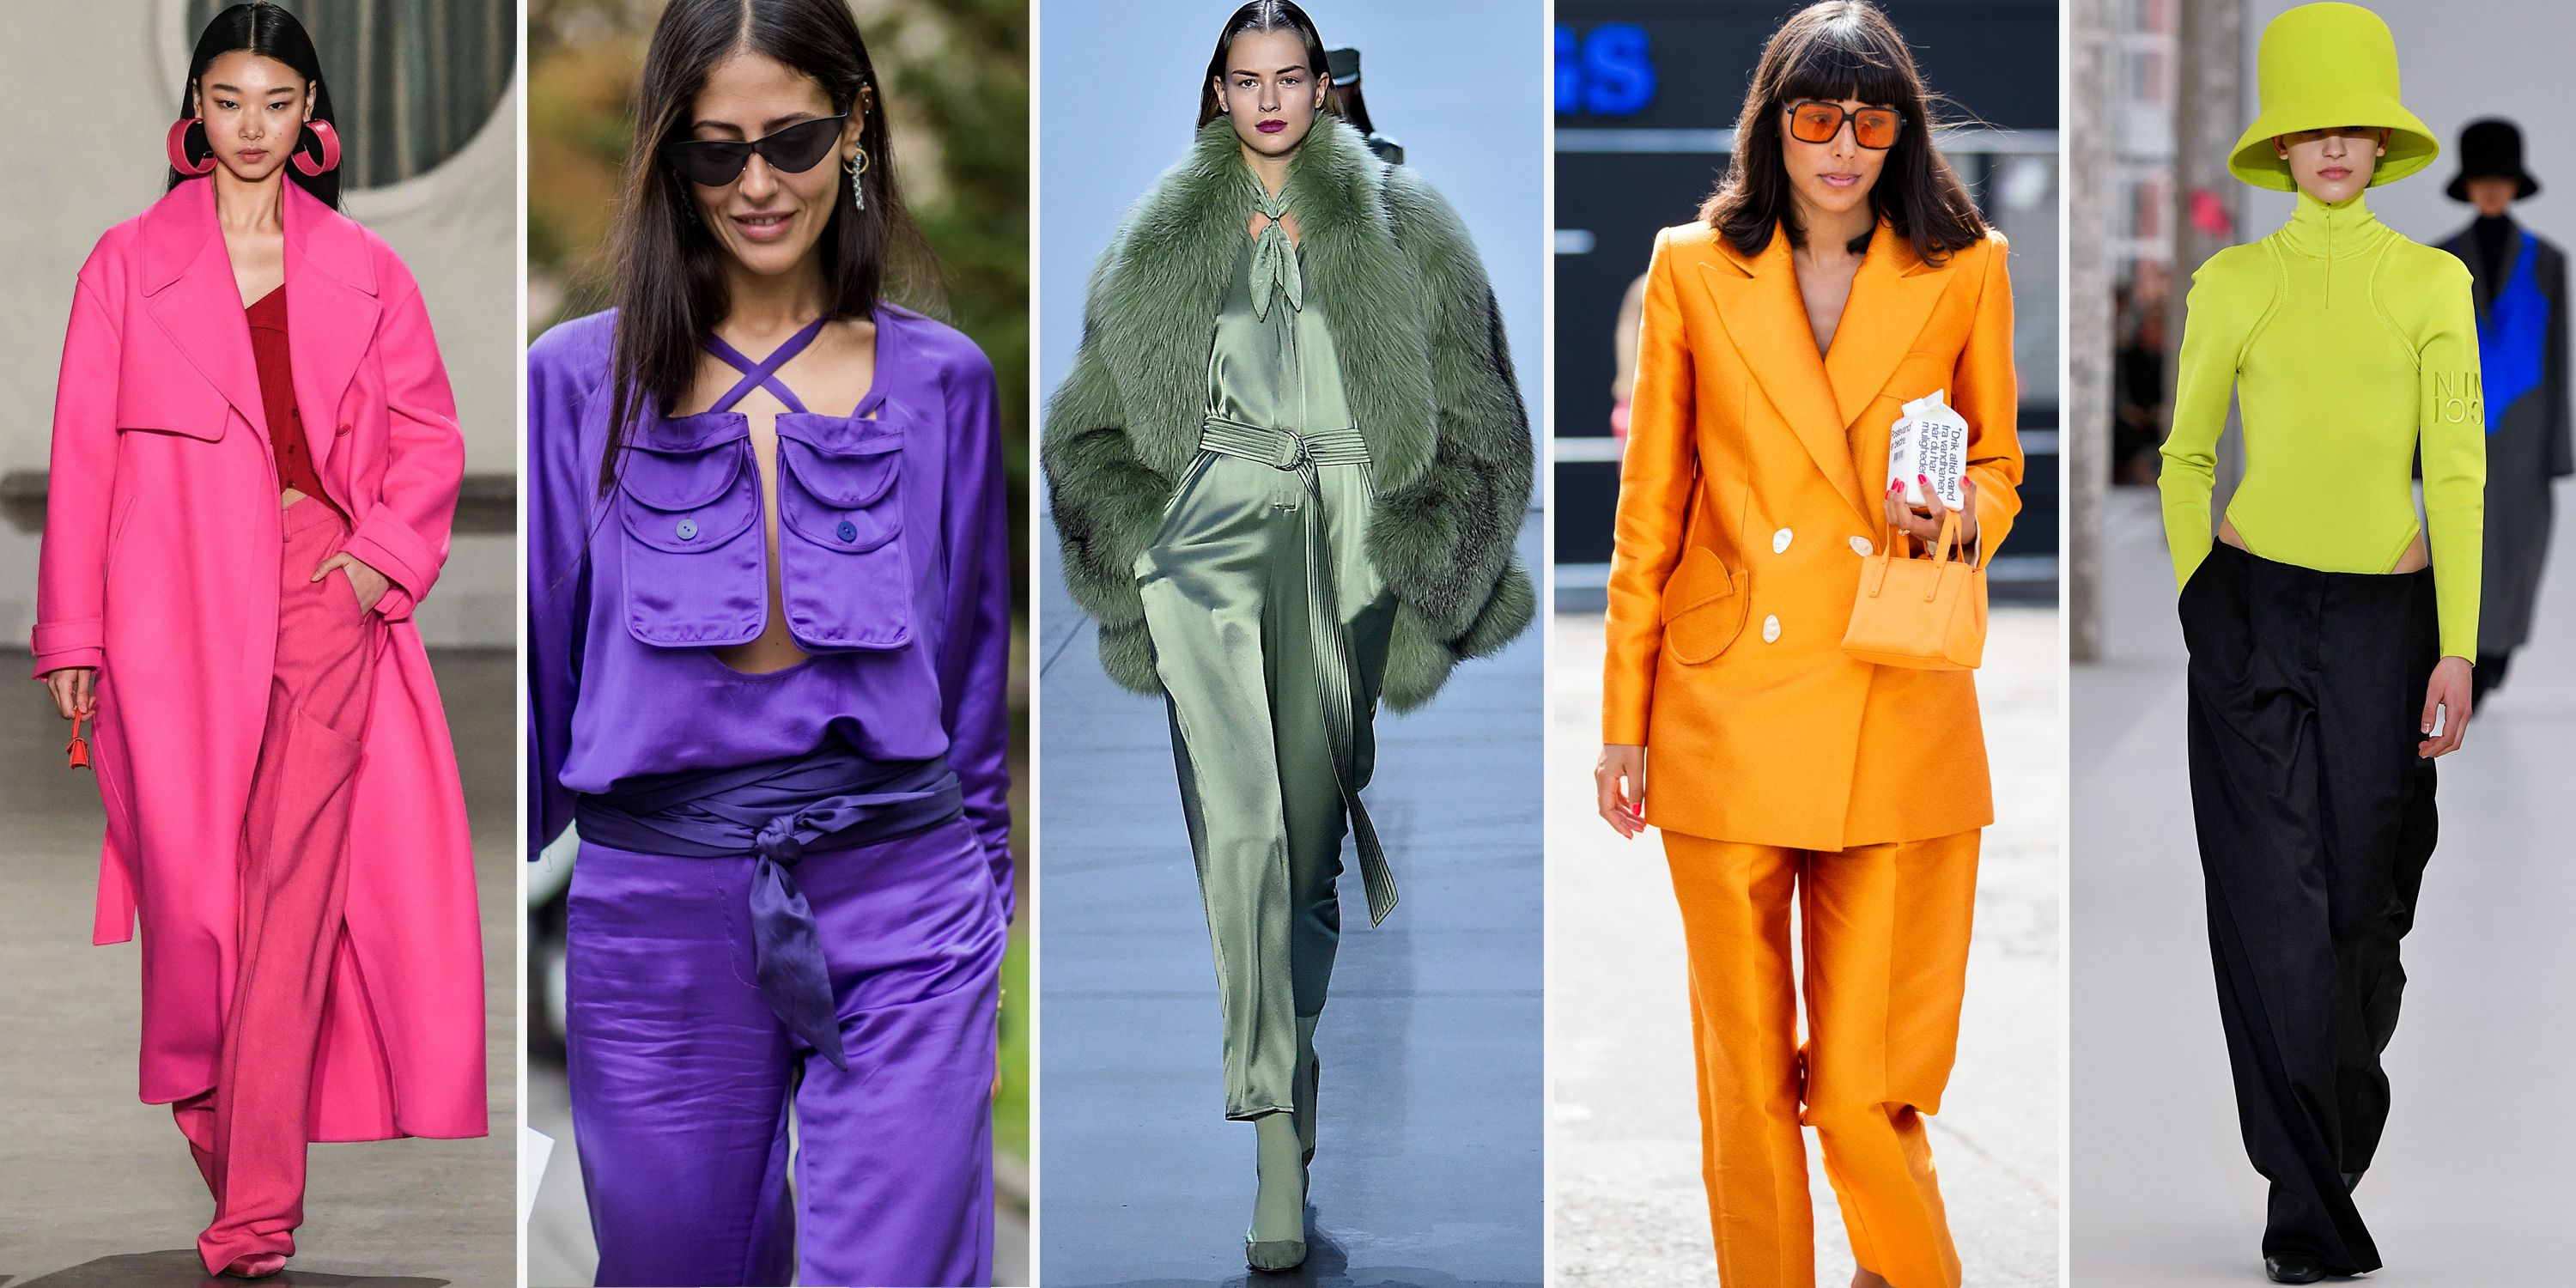 5 Top Fall Color Fashion Trends 2019 - Pistachio and Purple Color ...